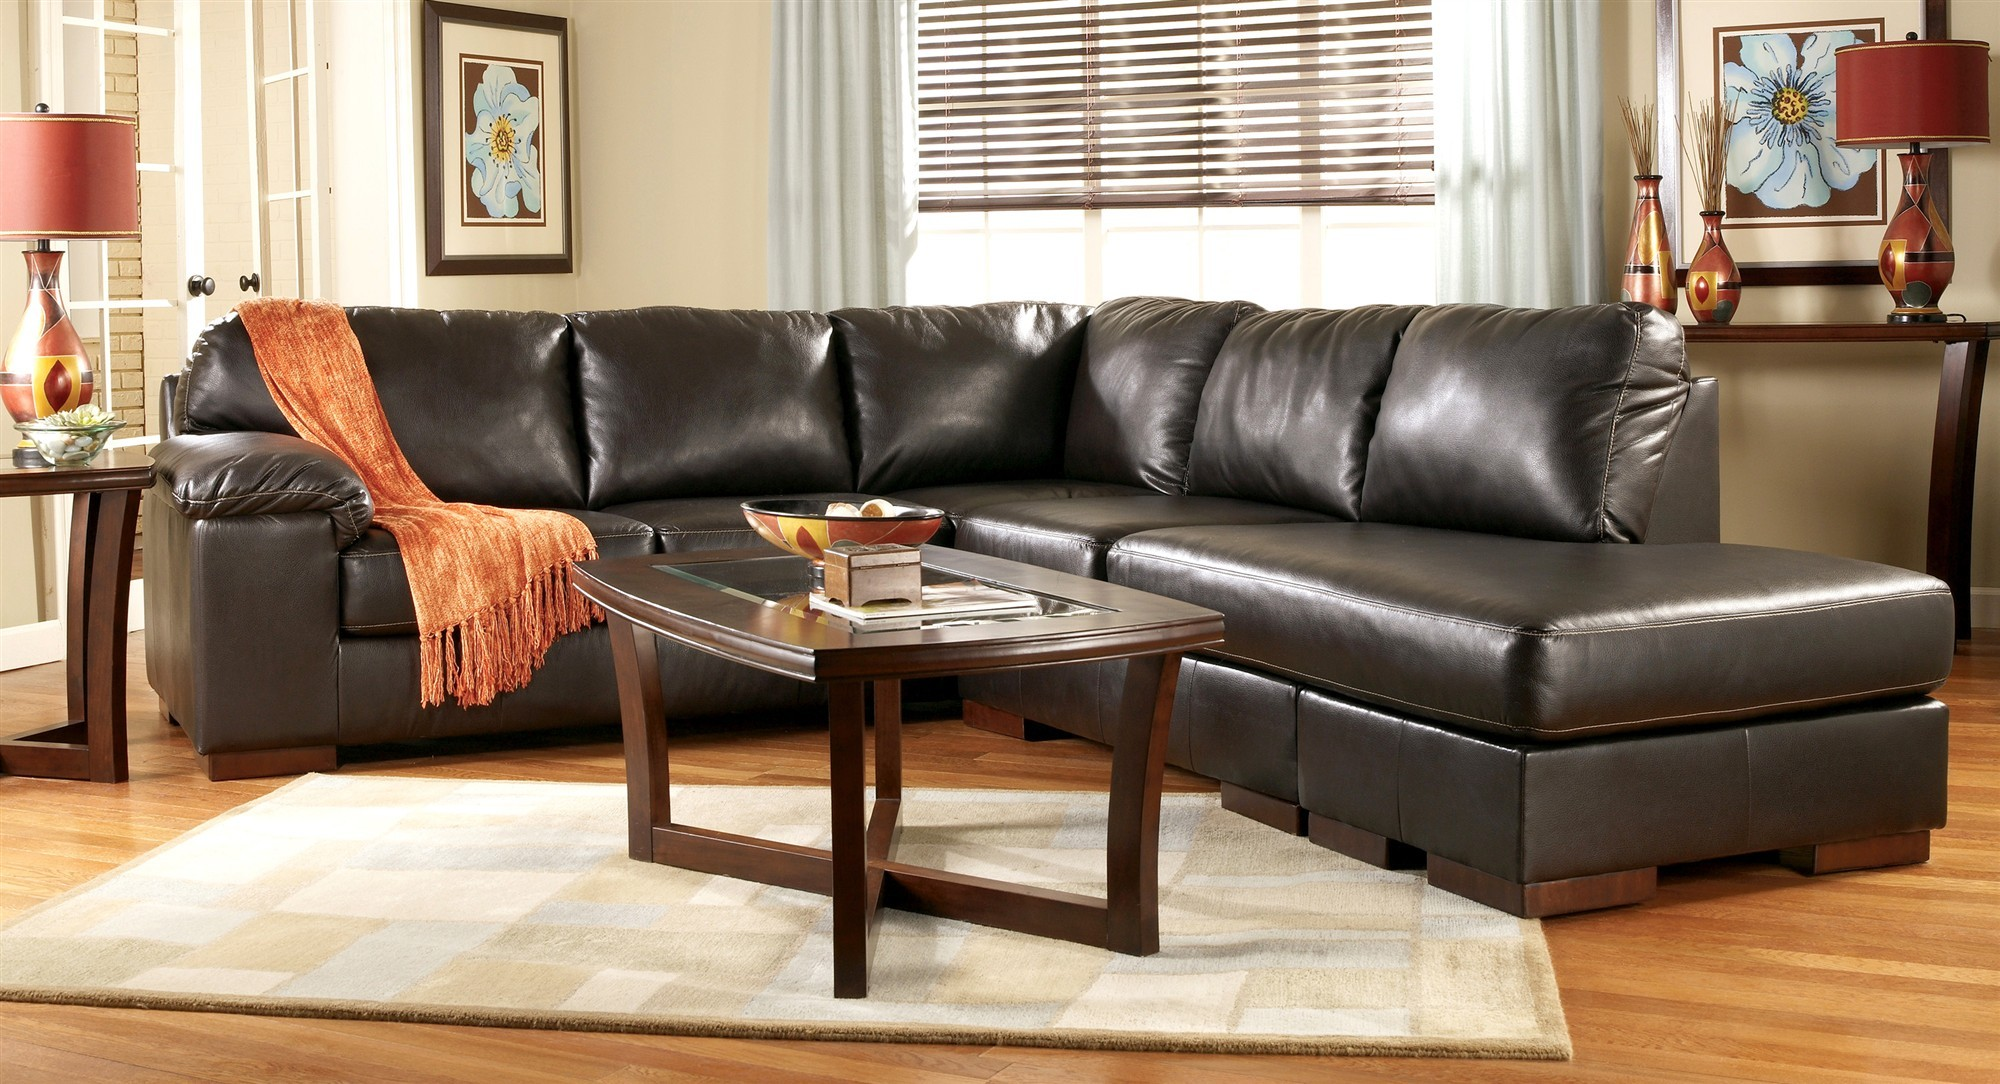 Dazzling black leather sectional for elegant living room design with black leather sectional sofa